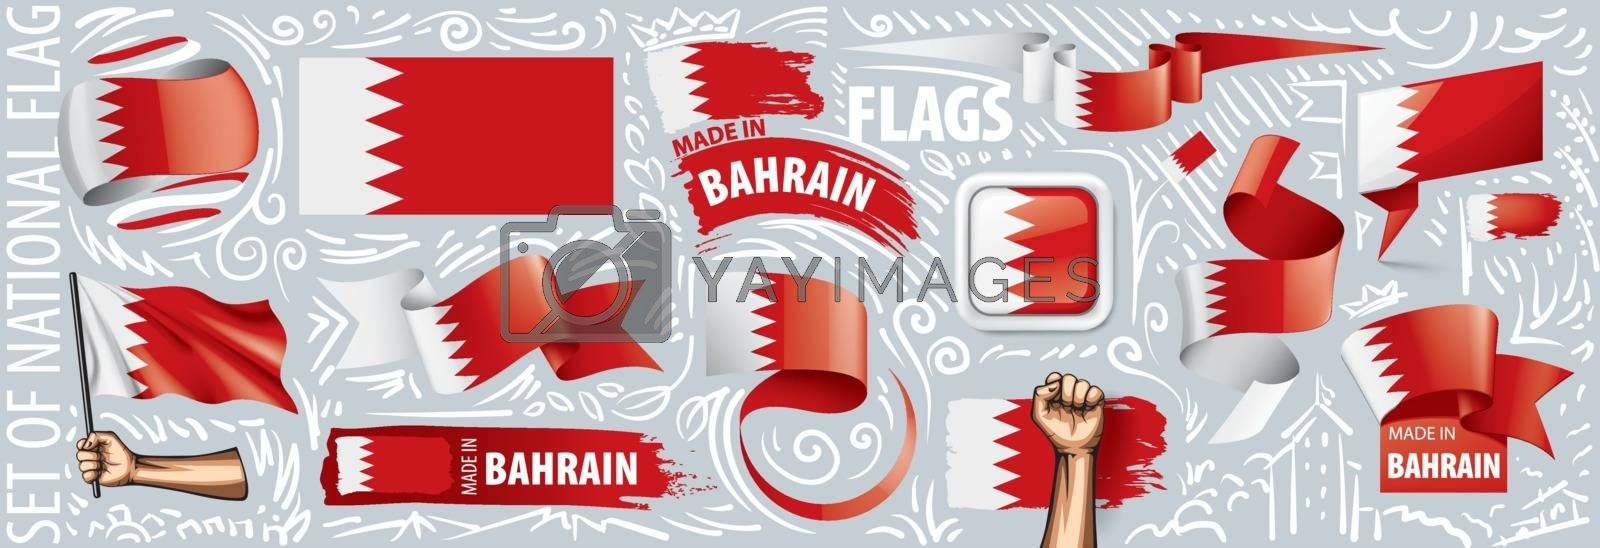 Vector set of the national flag of Bahrain in various creative designs.